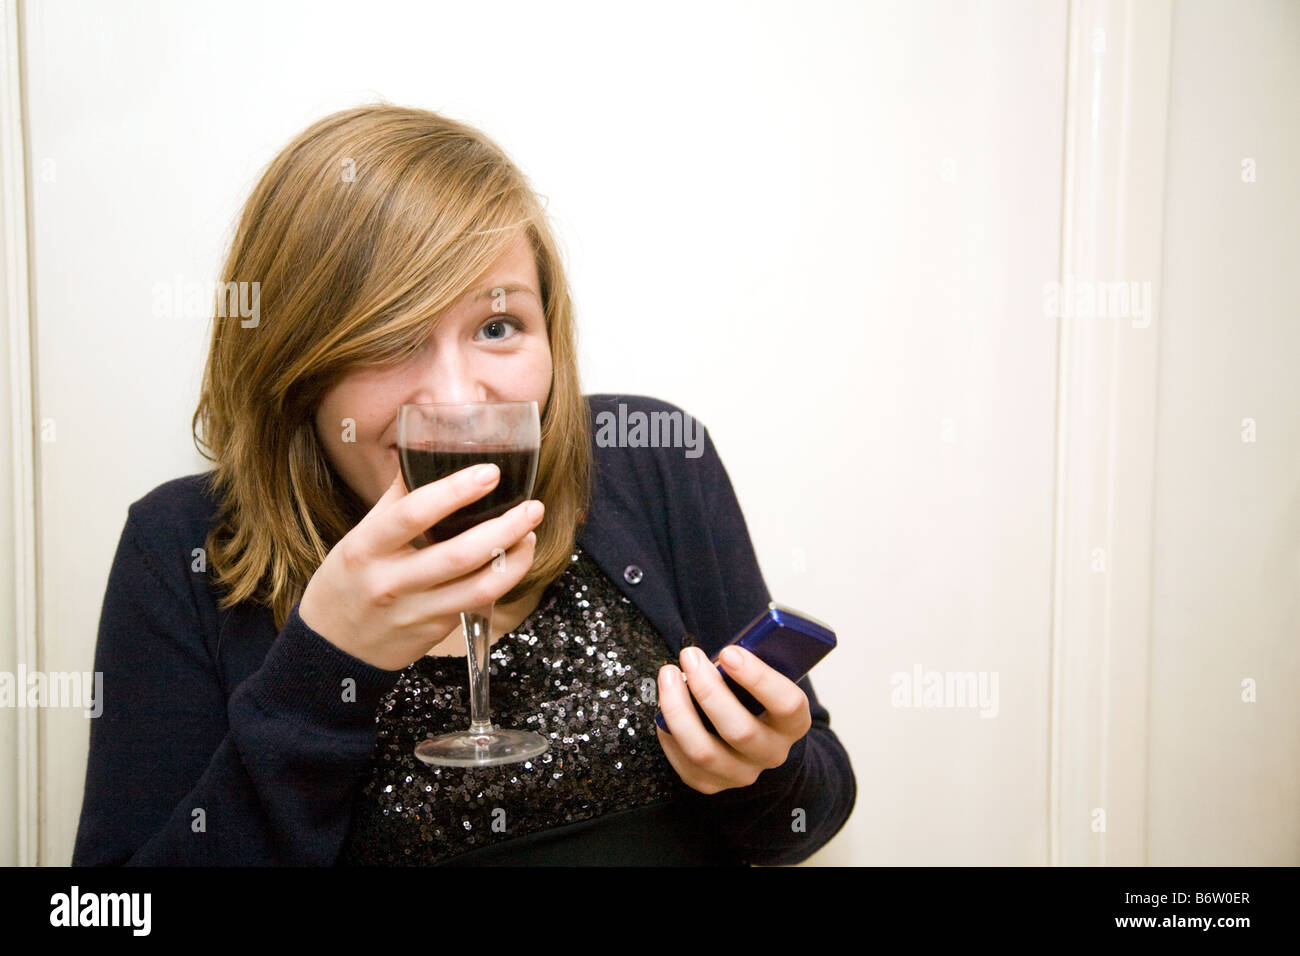 Blonde teenage girl age aged 14-15 years old drinking wine and texting with her mobile phone, UK - Stock Image